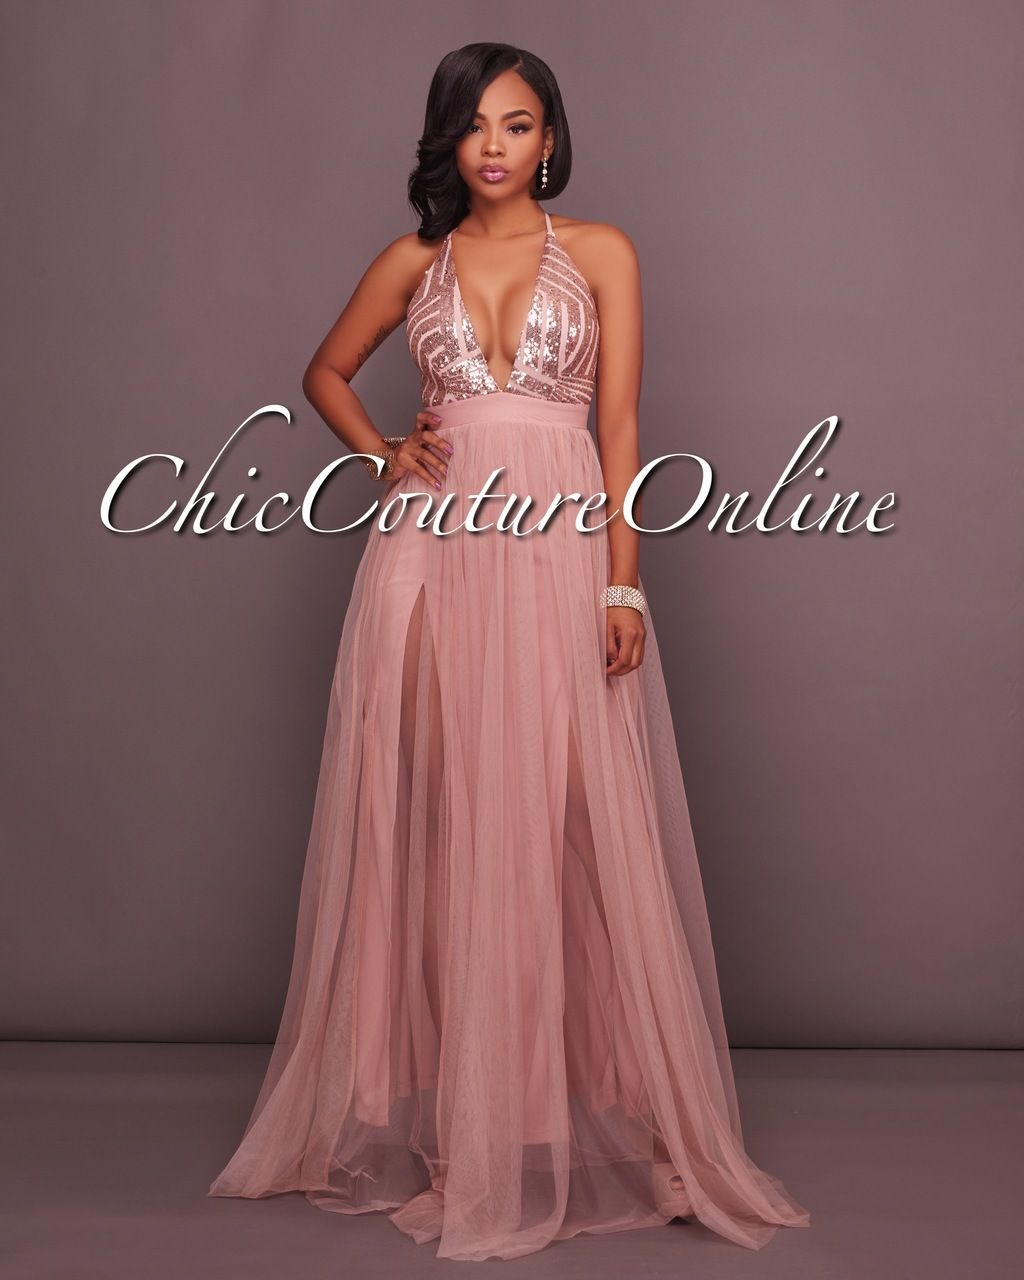 Madrina Dusty Blush Tulle Rose Gold Sequins Maxi Dress | Pinterest ...